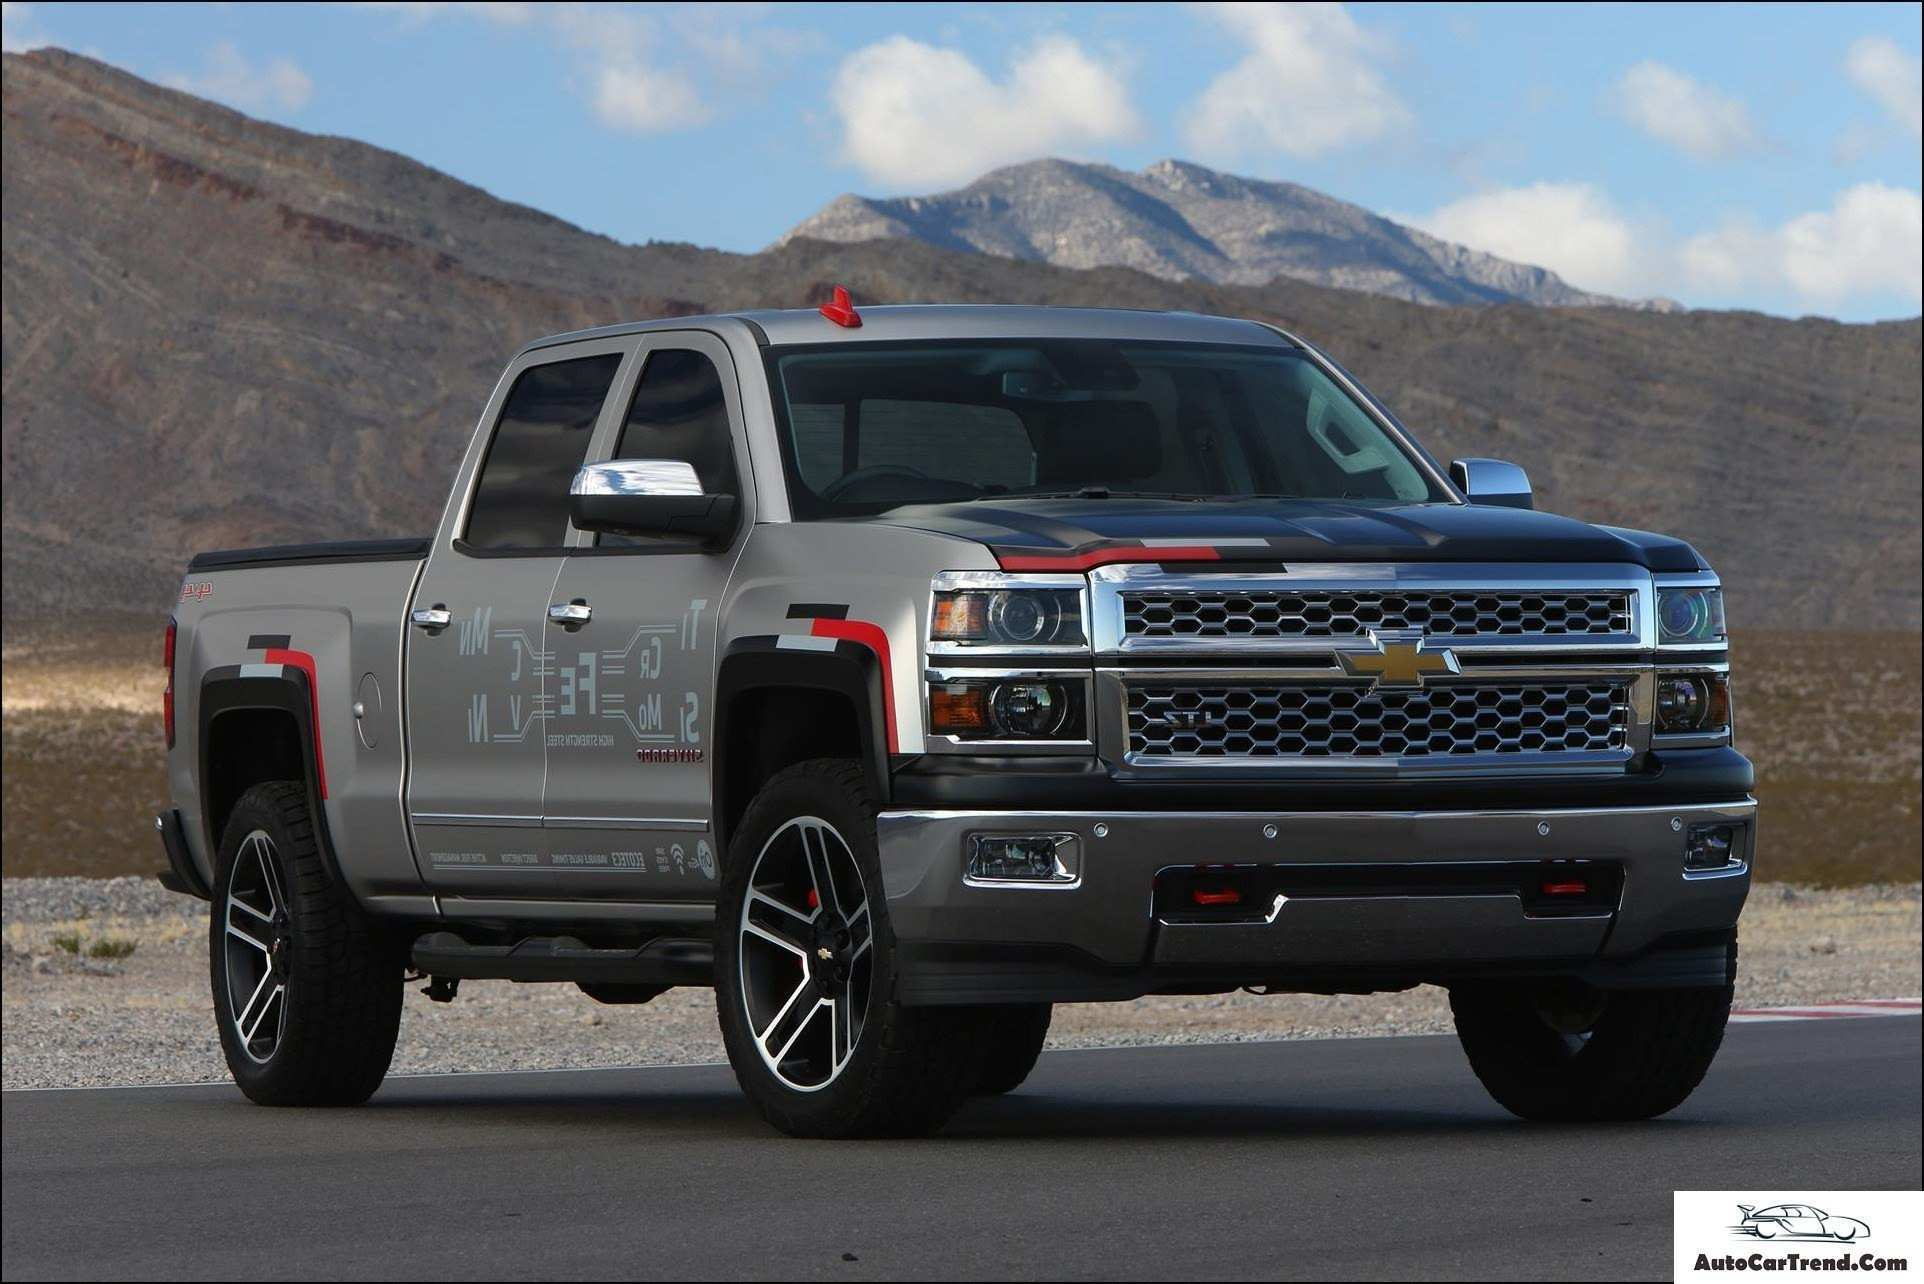 69 Great 2020 Chevy Avalanche Wallpaper for 2020 Chevy Avalanche